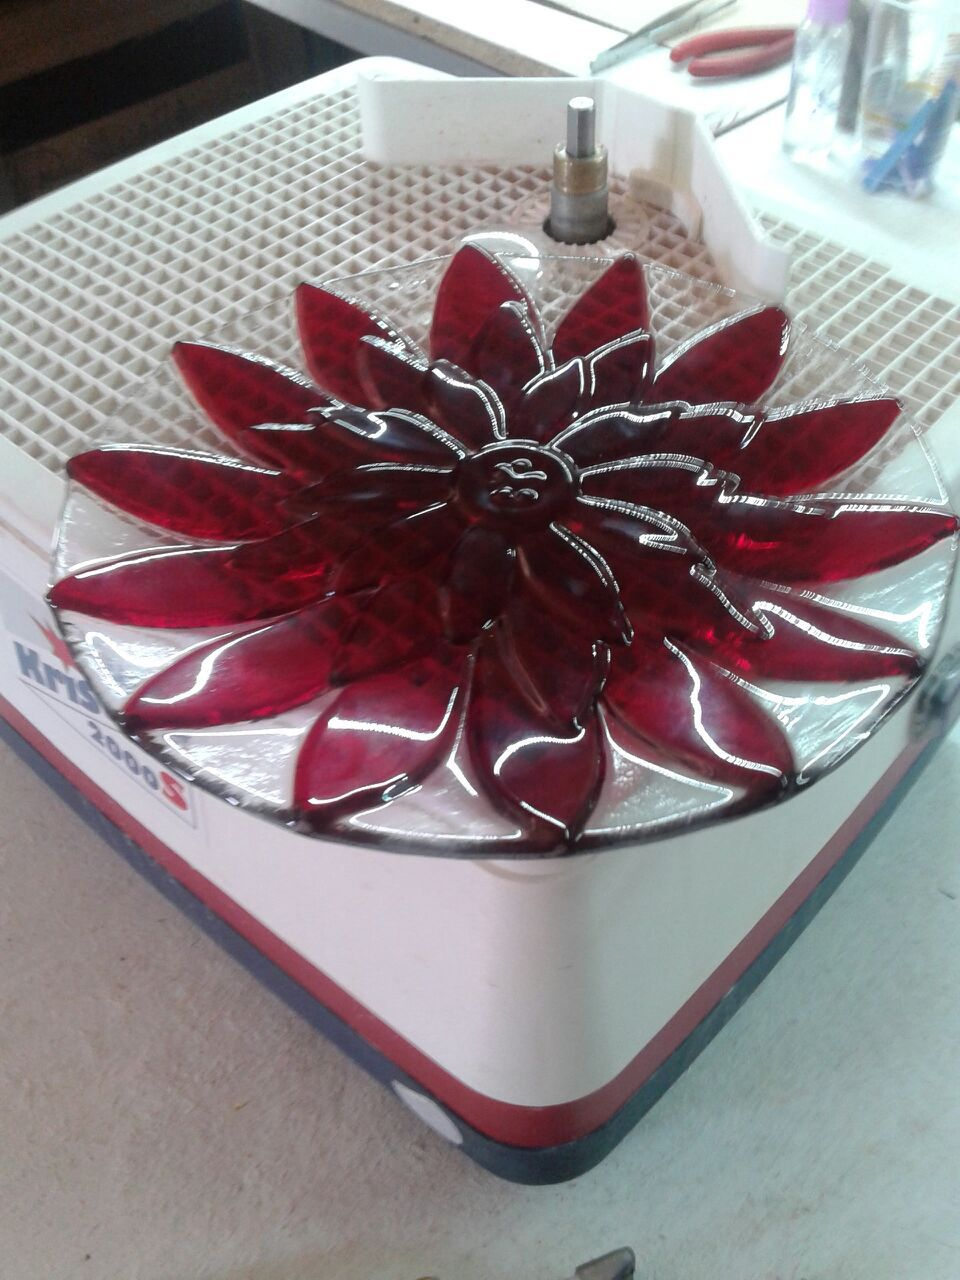 glass kitchen interior plate home red